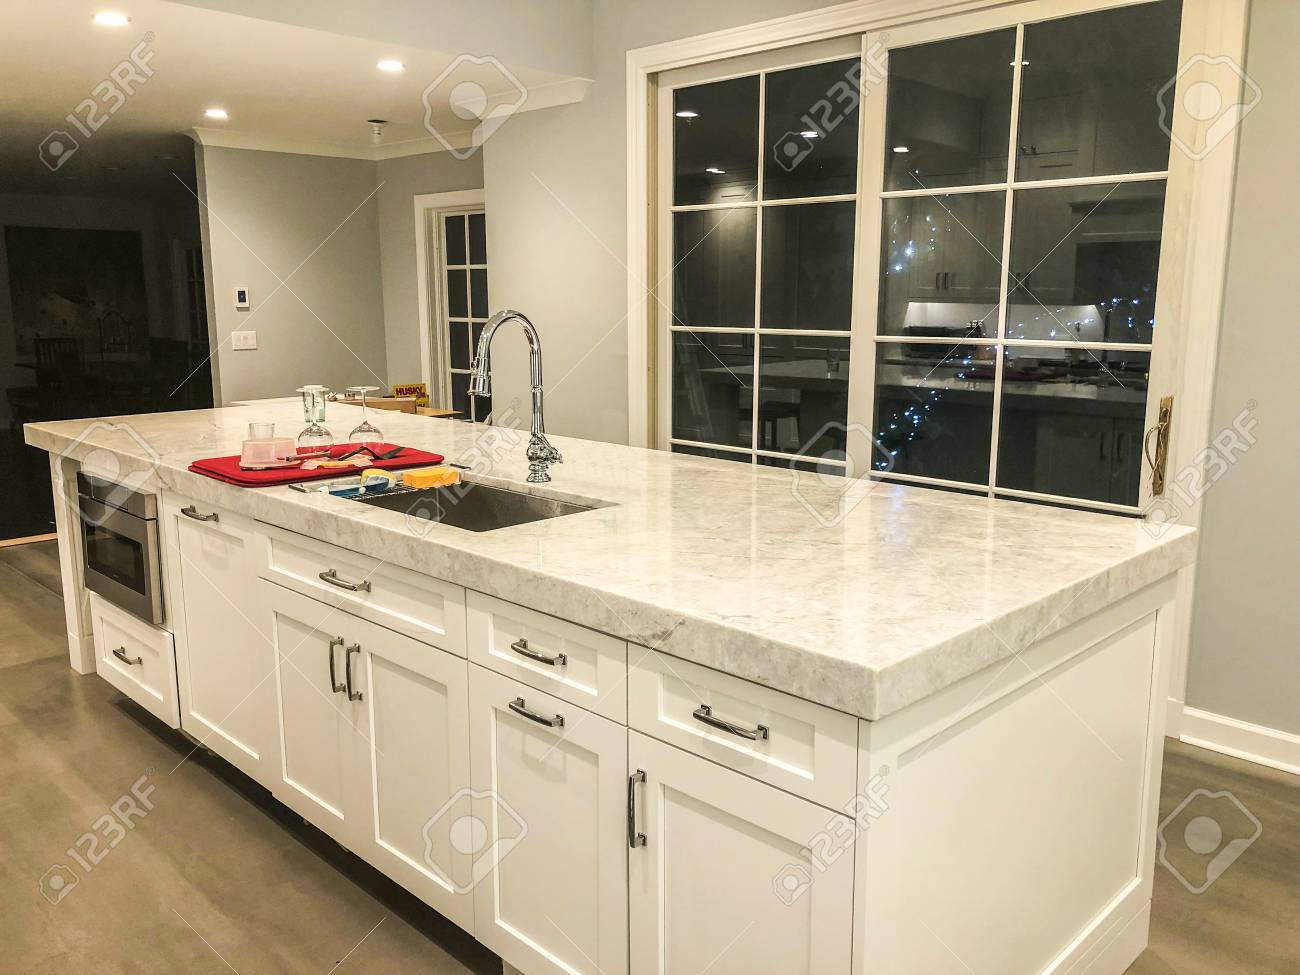 White Marble Island White Kitchen Island Cabinets With White Marble Countertops